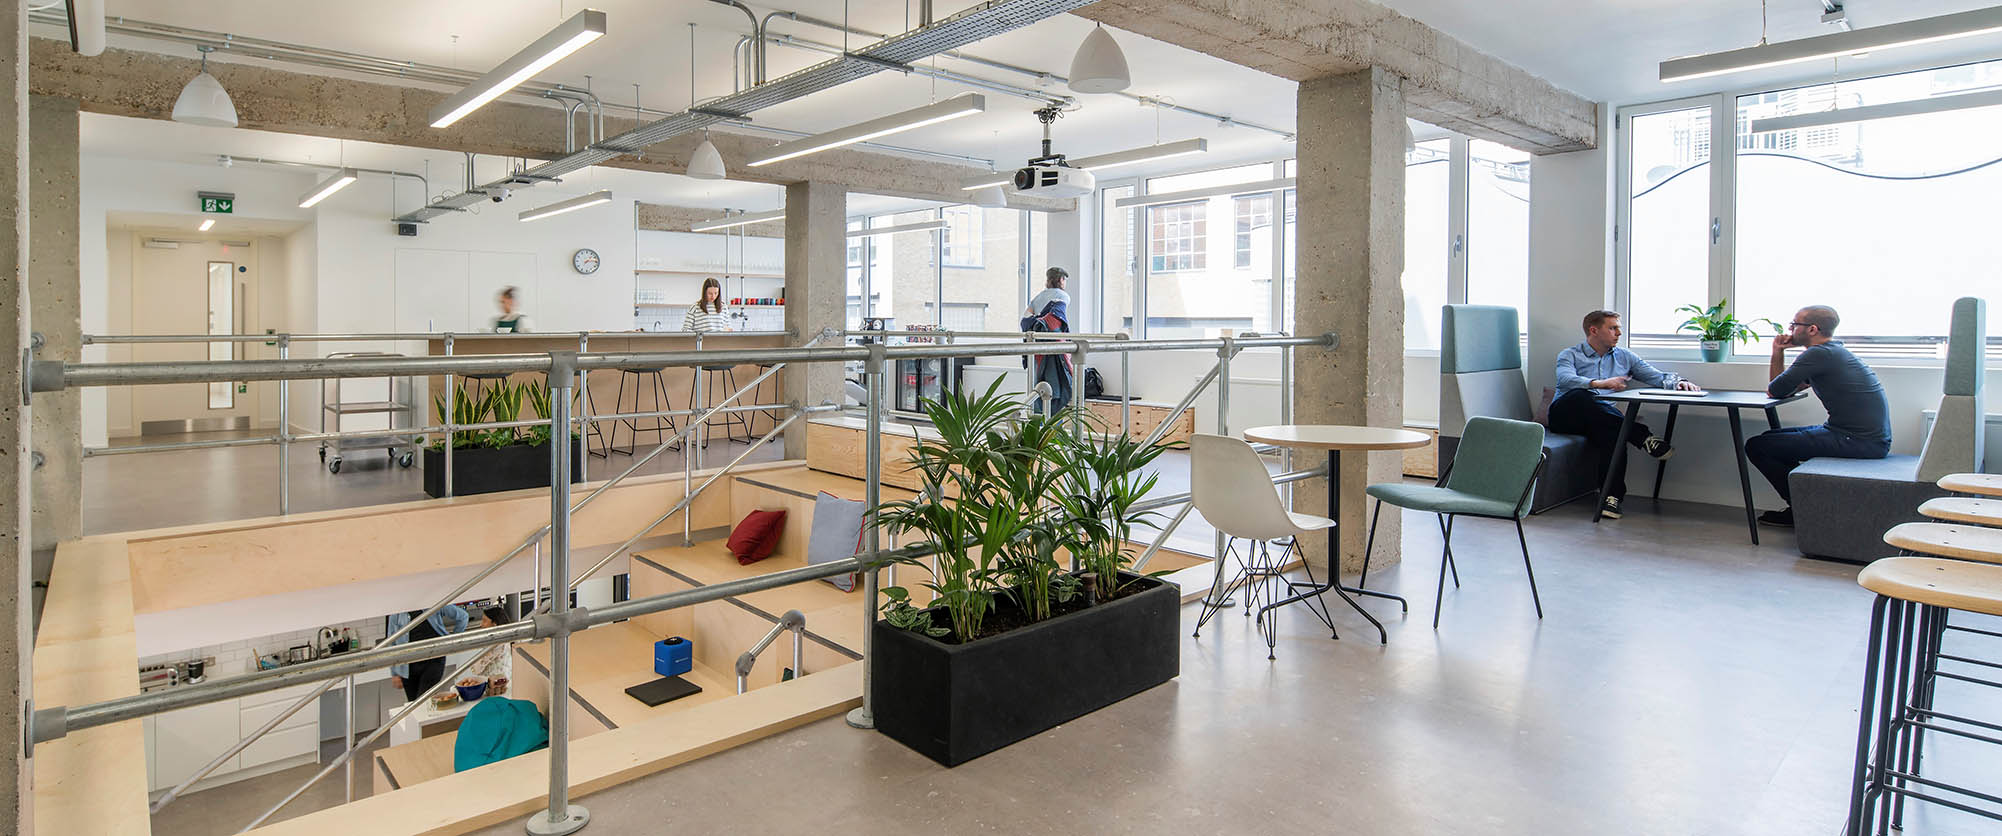 We design inspirational workplaces